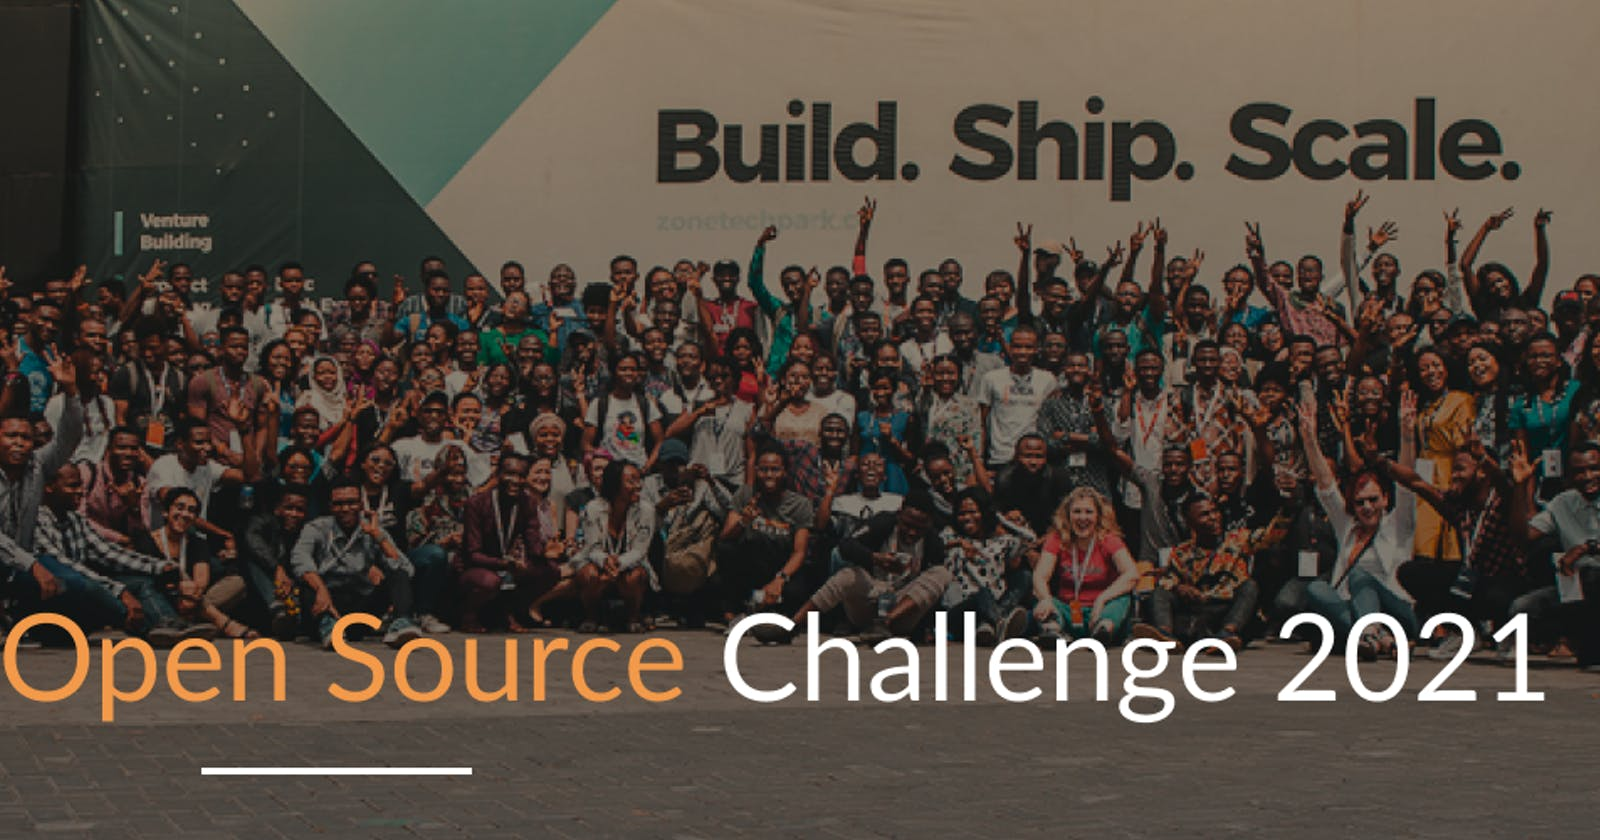 Announcing the Open Source Challenge 2021